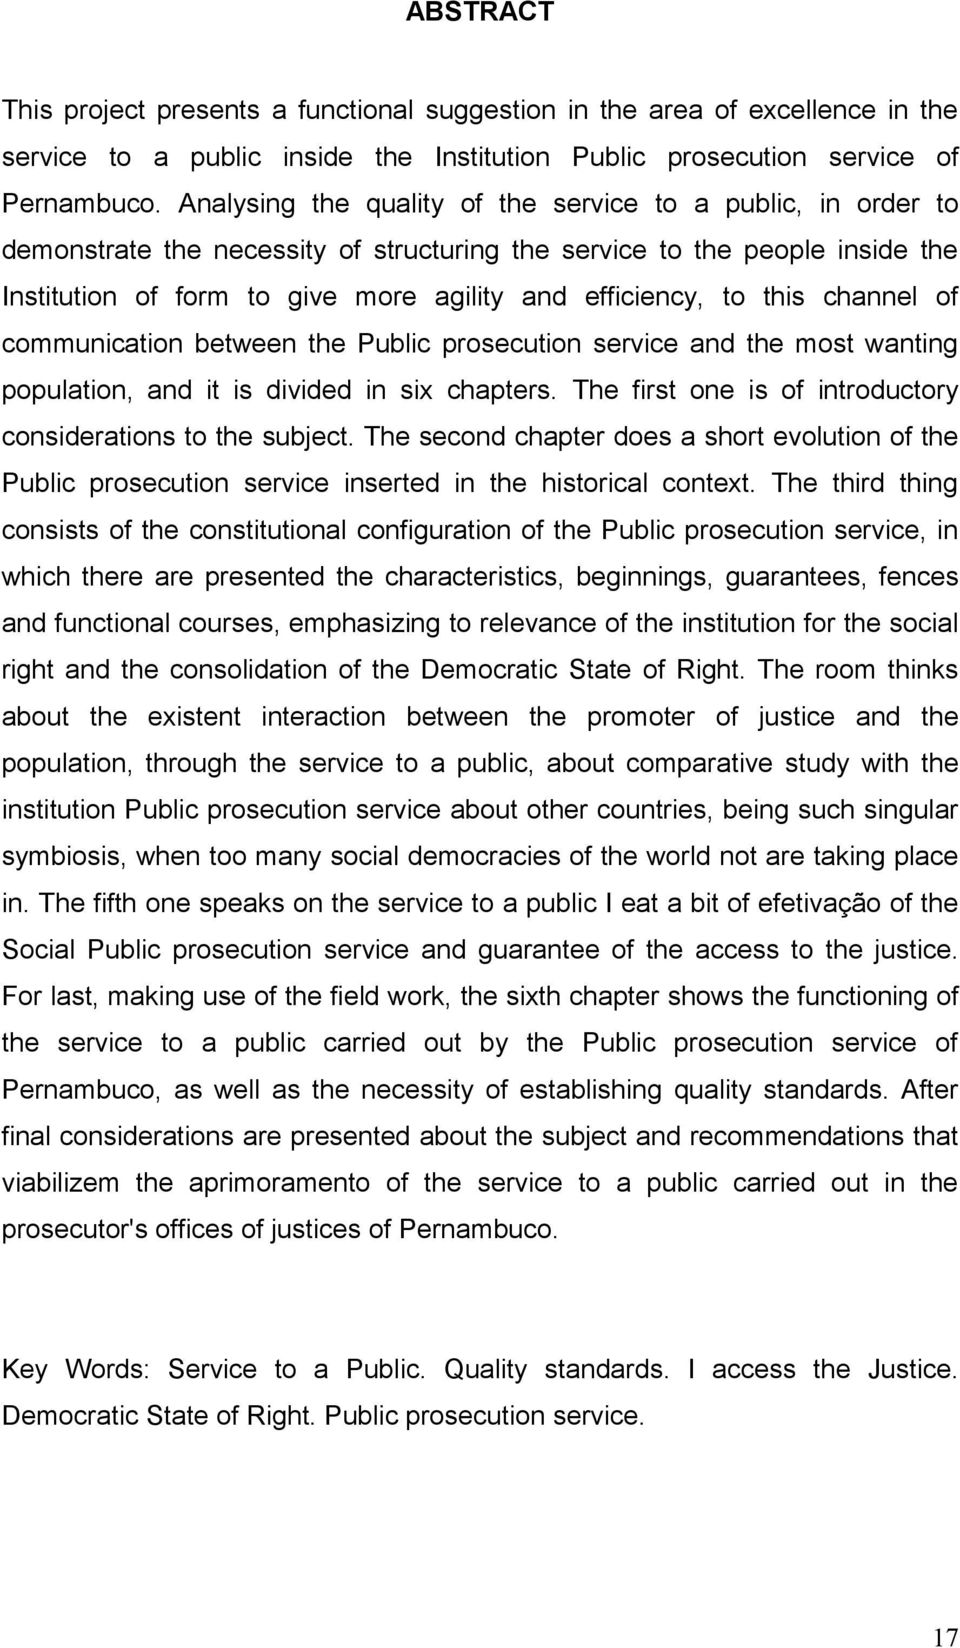 this channel of communication between the Public prosecution service and the most wanting population, and it is divided in six chapters. The first one is of introductory considerations to the subject.